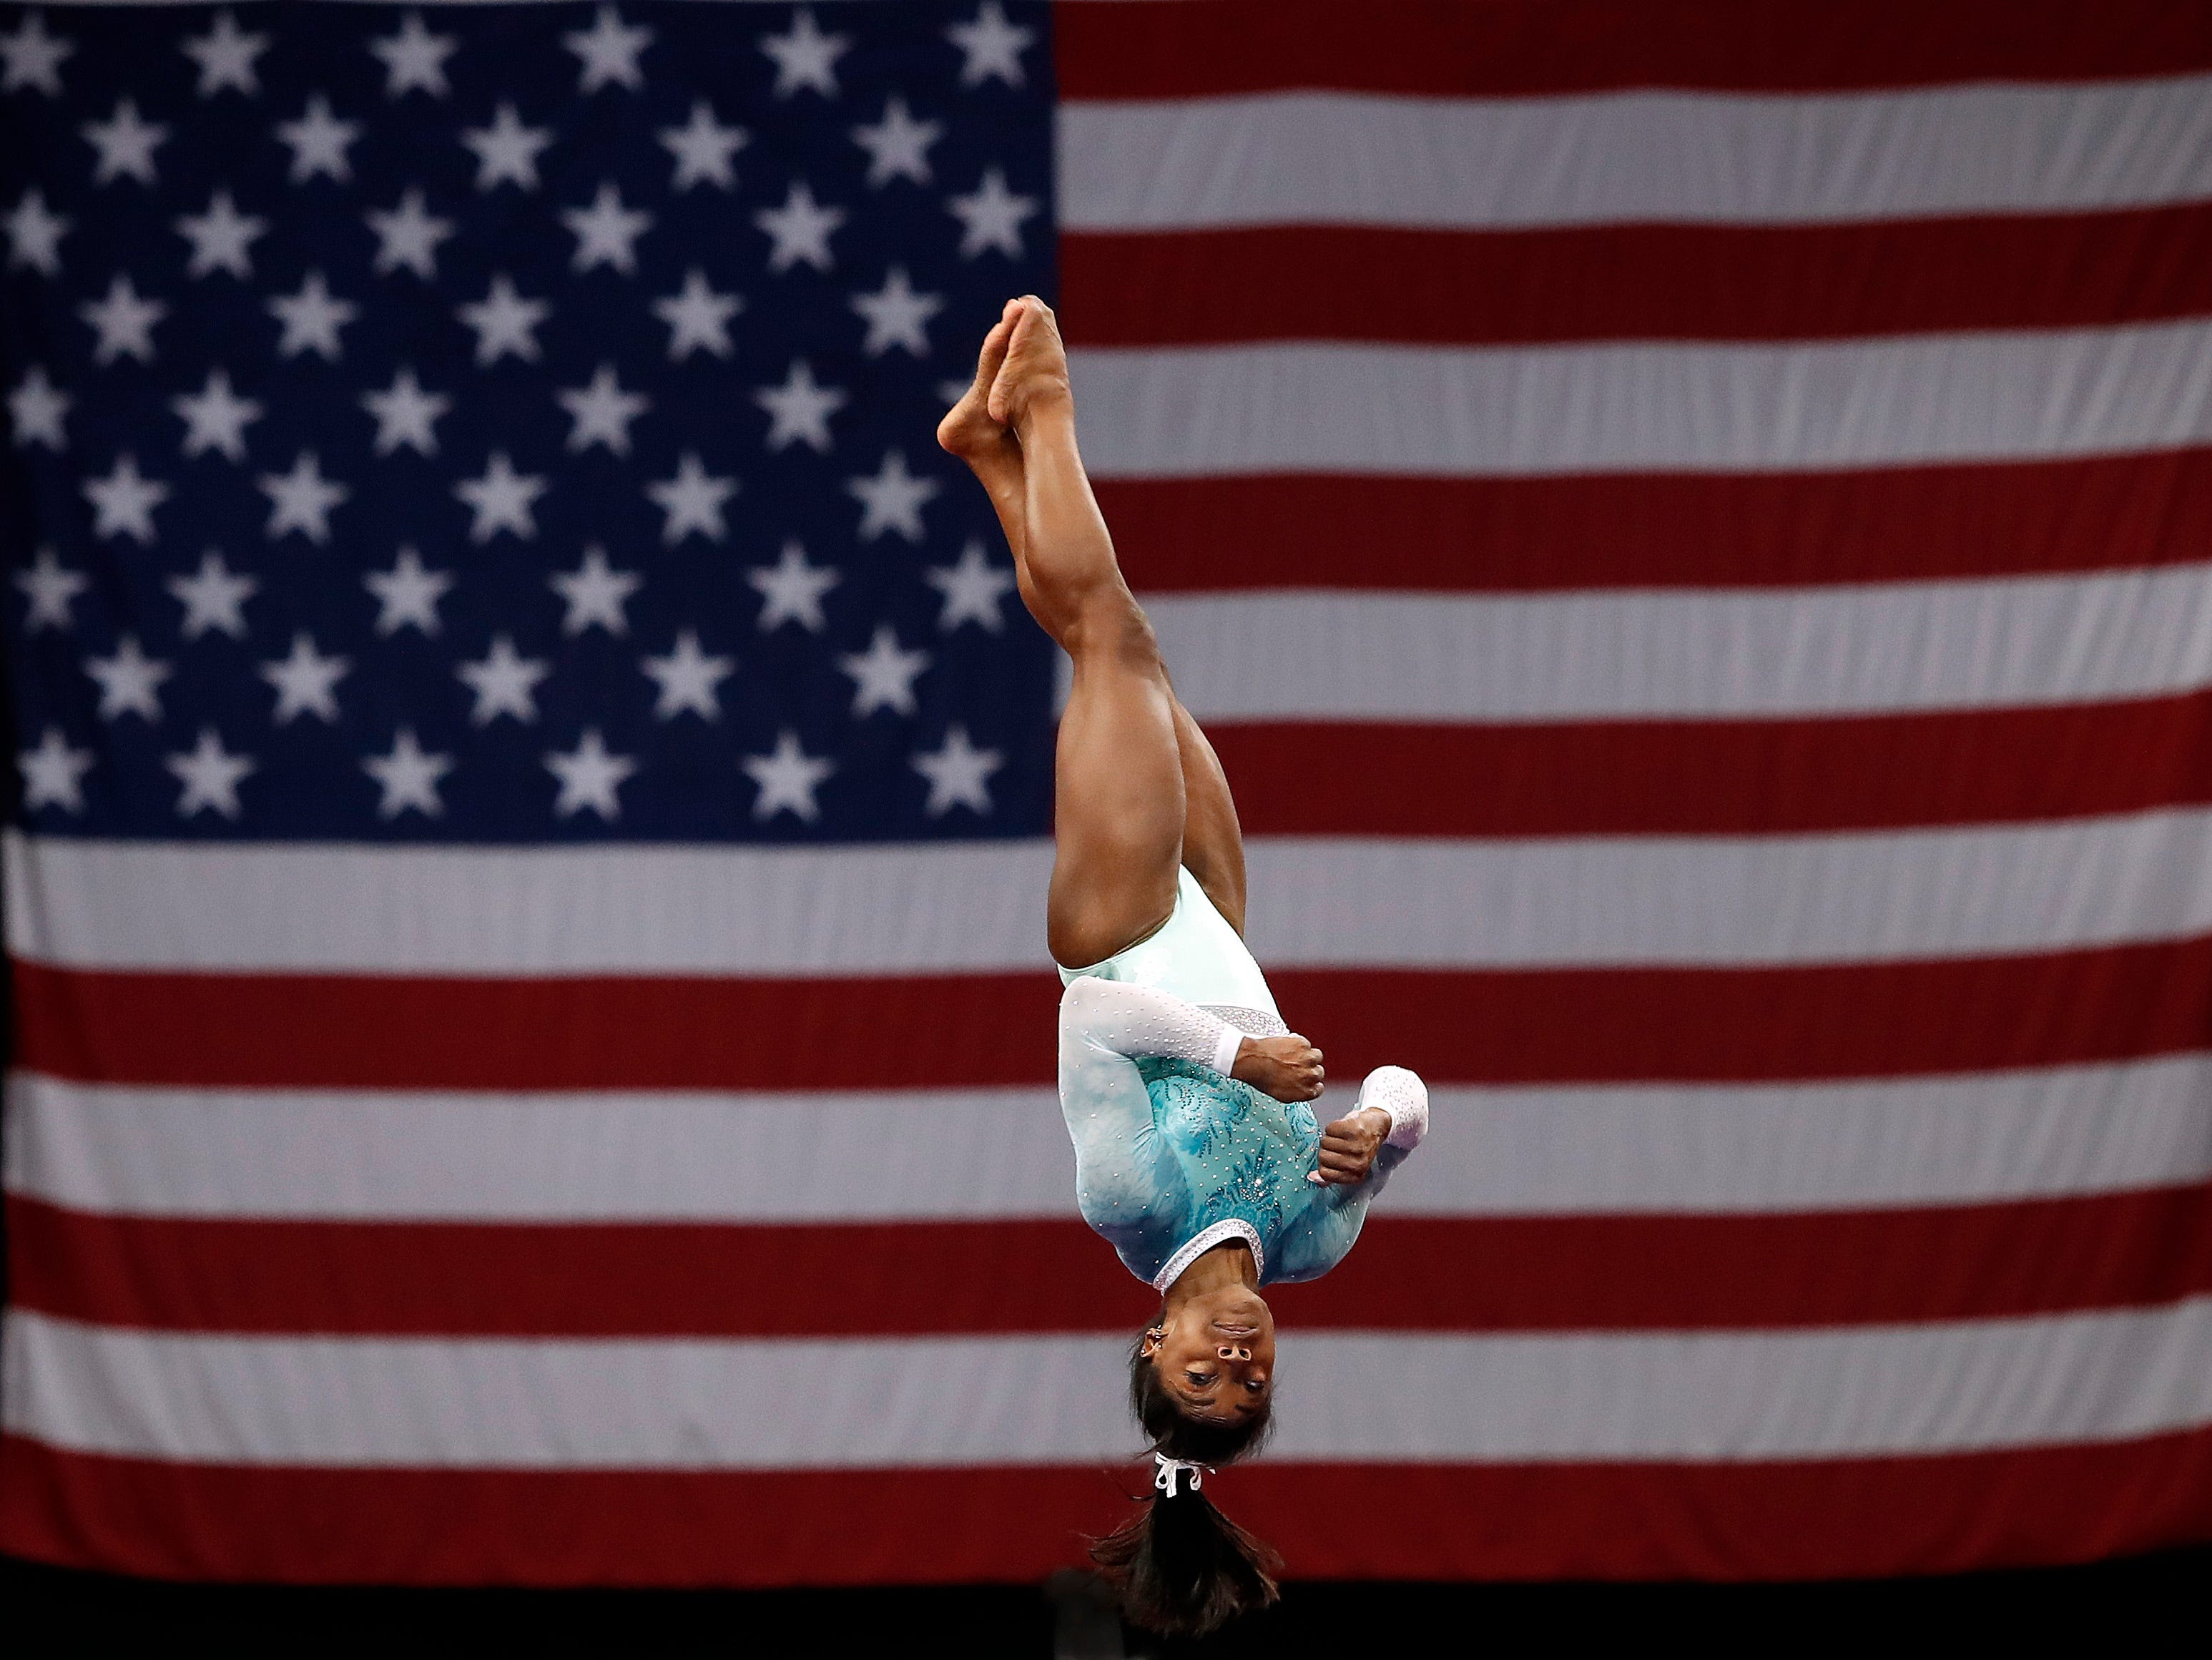 In 2018, Simone Biles competes on the vault during the U.S. Gymnastics Championships at TD Garden in Boston.